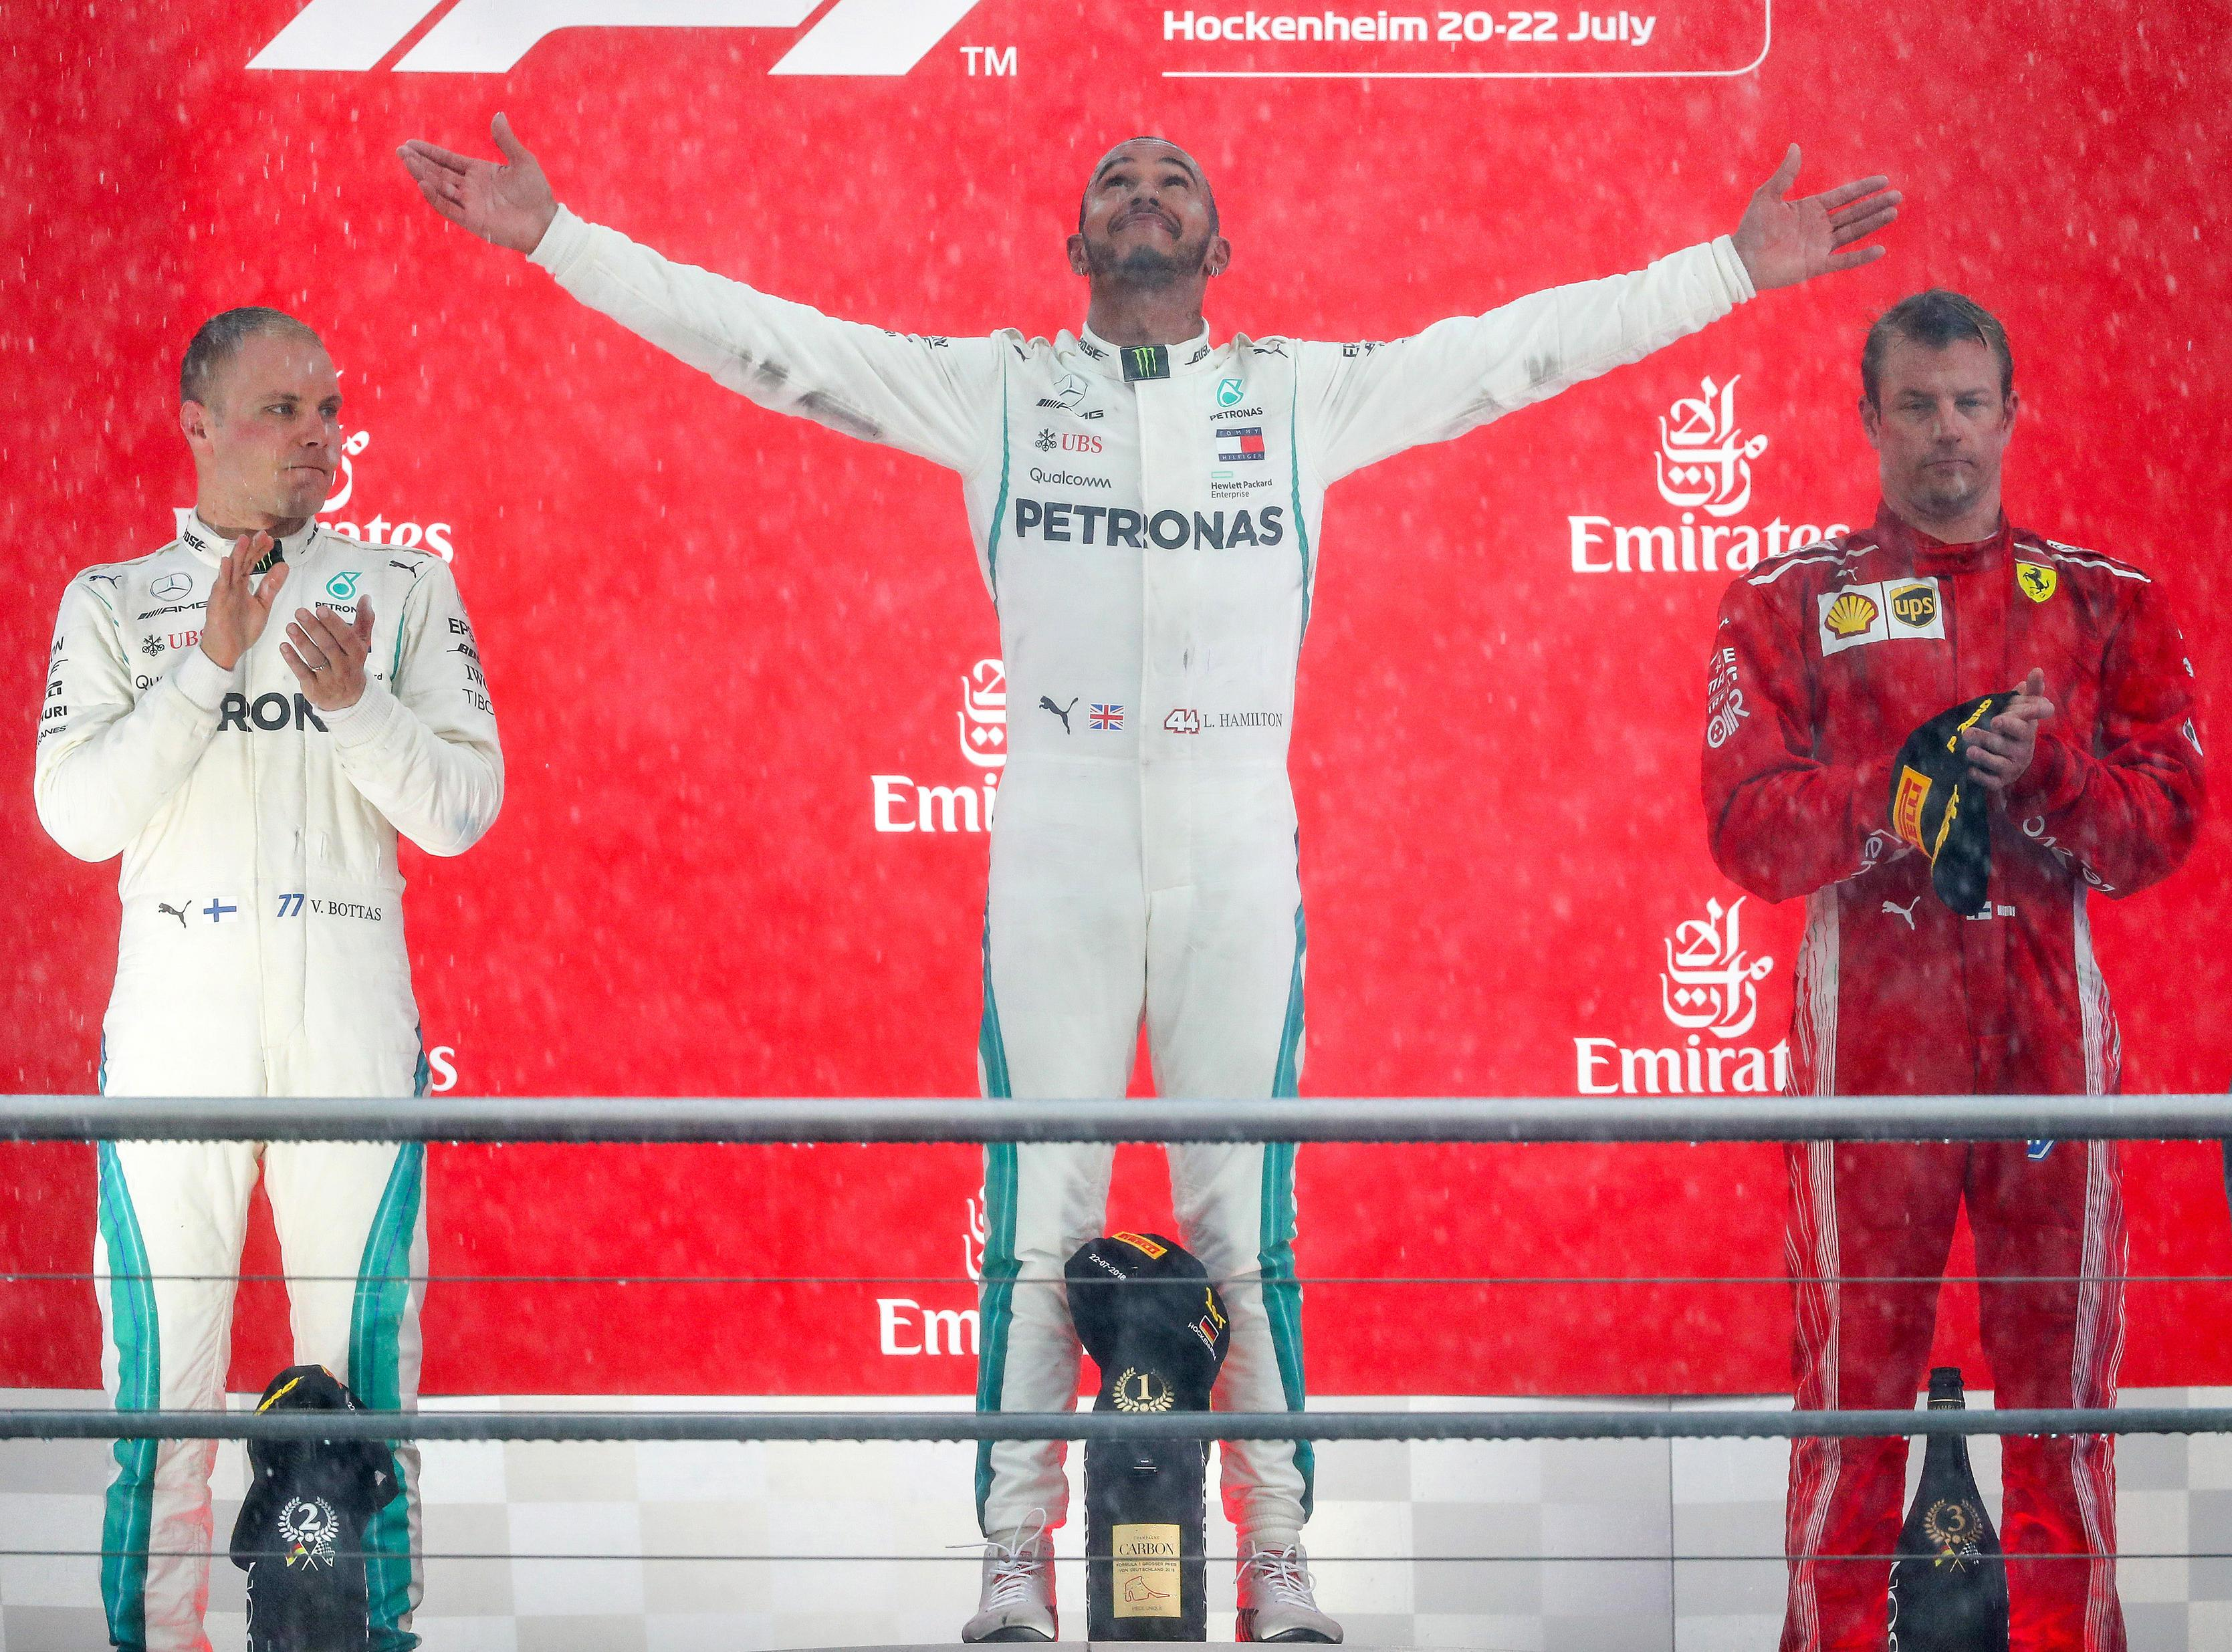 Lewis Hamilton's antics during German GP have been slammed by Jacques Villeneuve